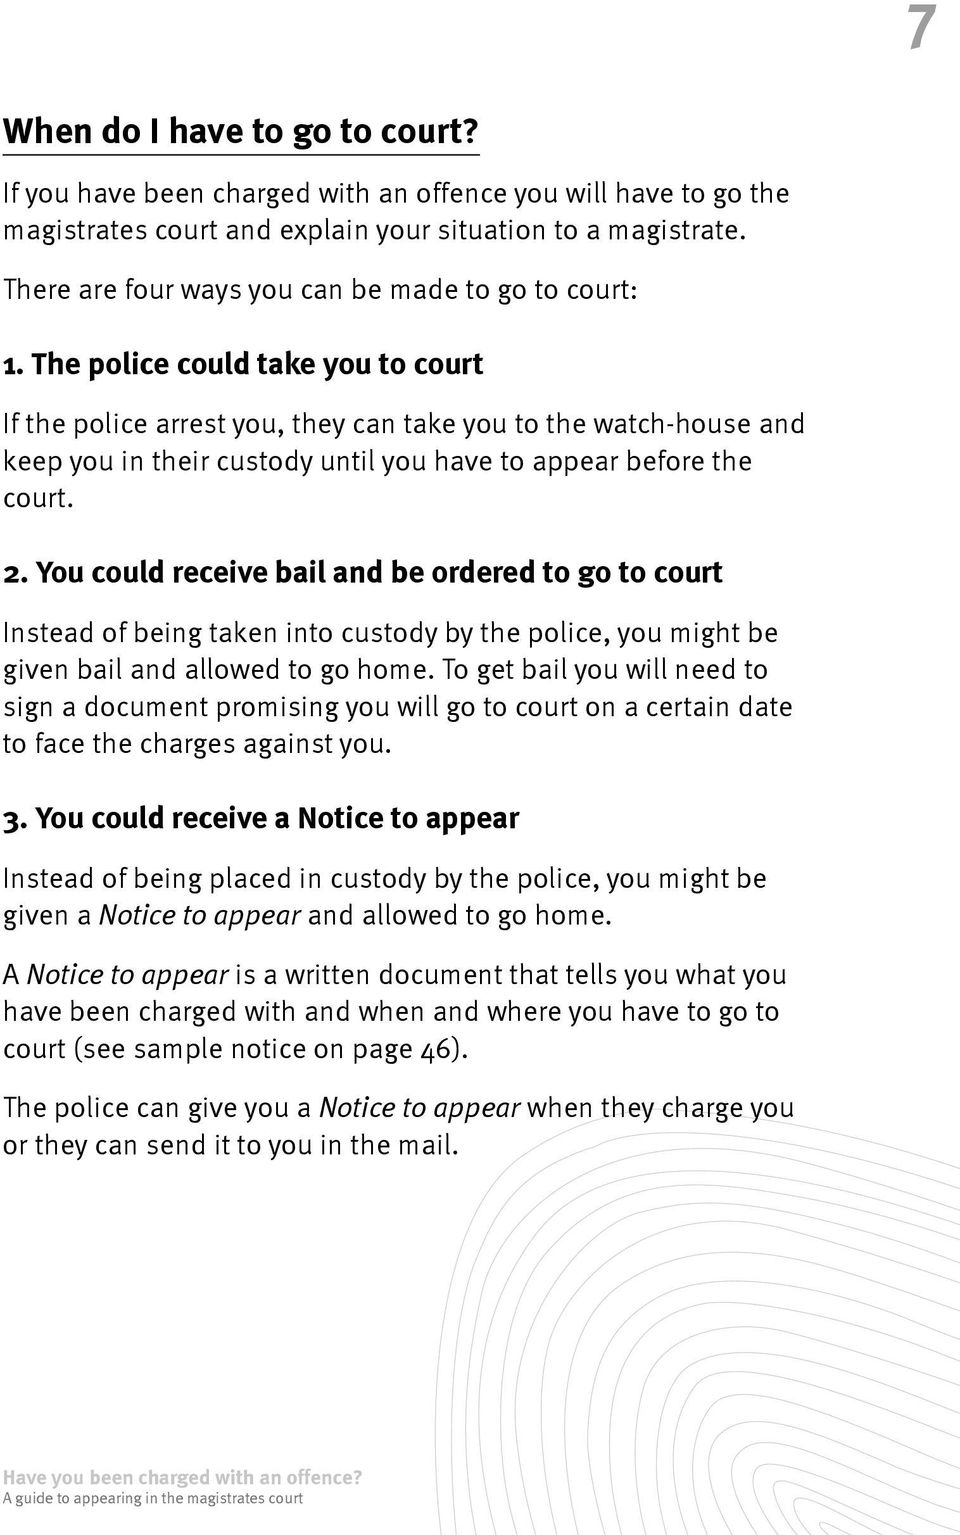 The police could take you to court If the police arrest you, they can take you to the watch-house and keep you in their custody until you have to appear before the court. 2.